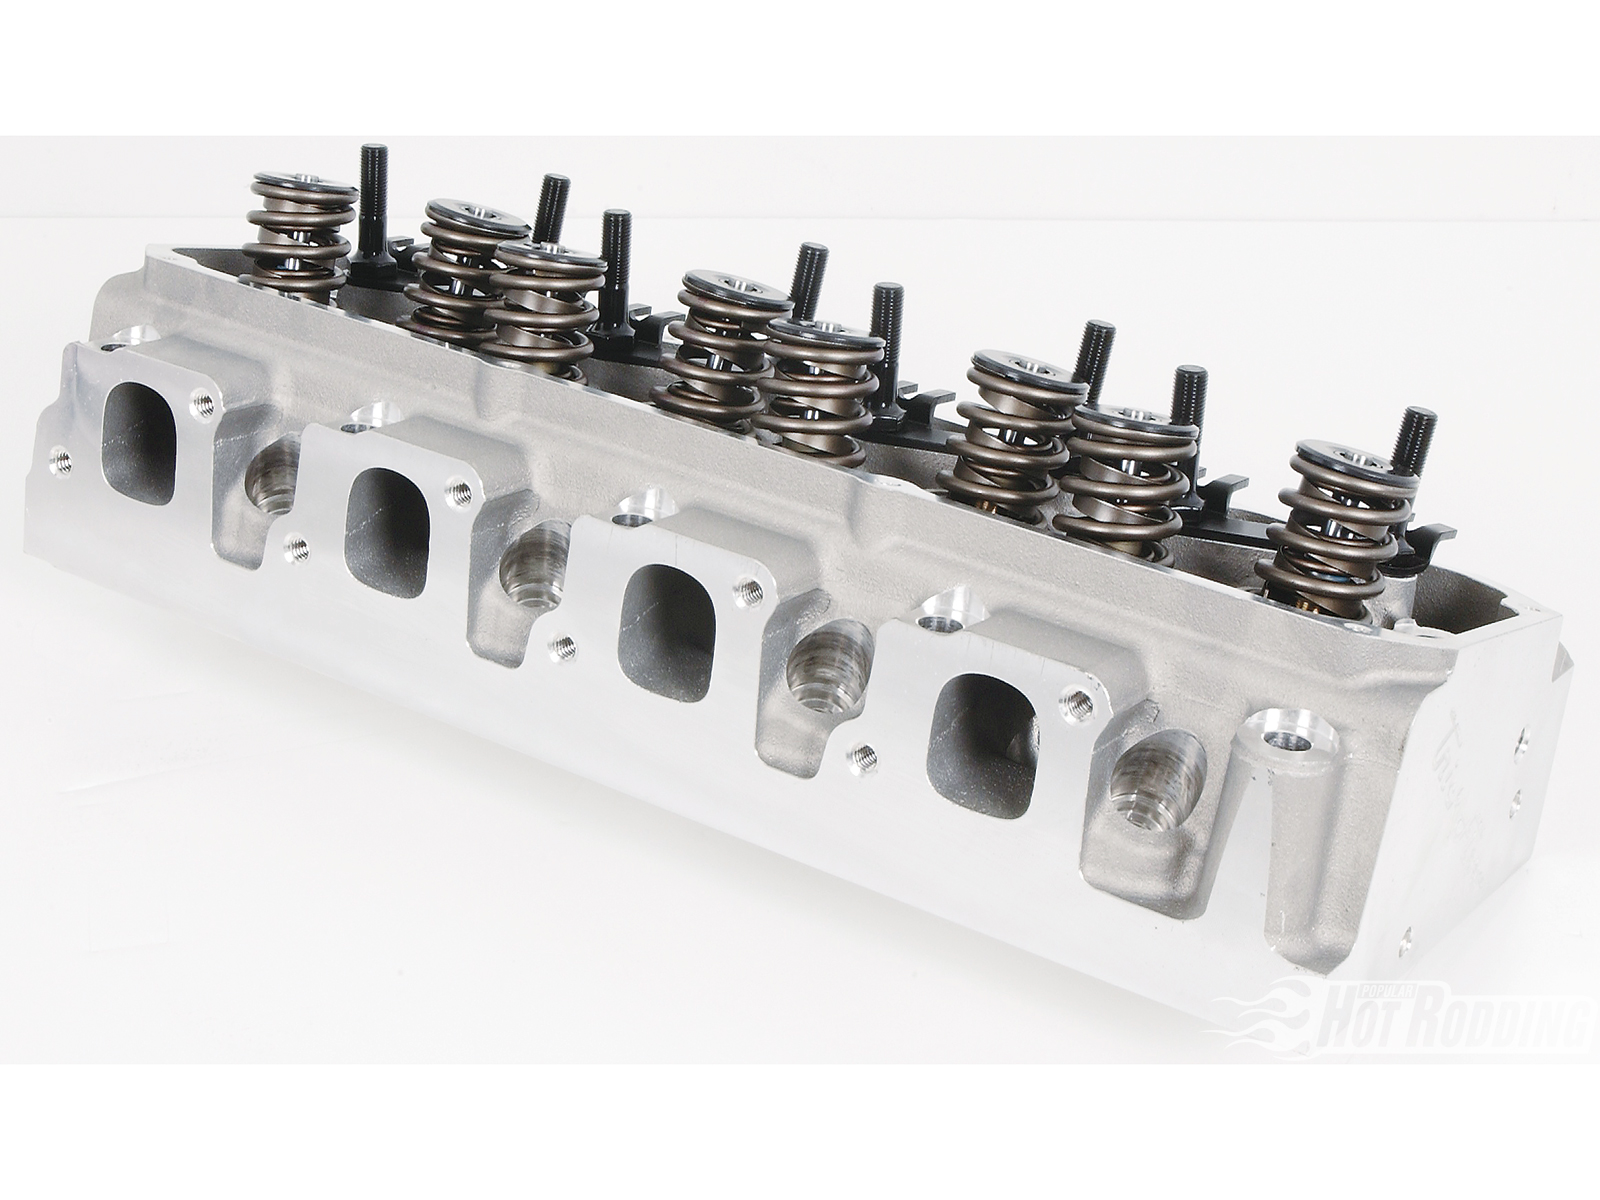 1. Without further ado, these are the Trick Flow PowerPort Cleveland 225 heads (TFS-5161T004-C01, $1,299.99). They feature fully CNC-ported 225cc intake and 115cc exhaust runners and 60cc combustion chambers, and are designed to bridge the gap between the high-rpm slanted Ford 4V heads and the more pedestrian low-rpm 2V heads. They are available bare, or fully assembled like ours.